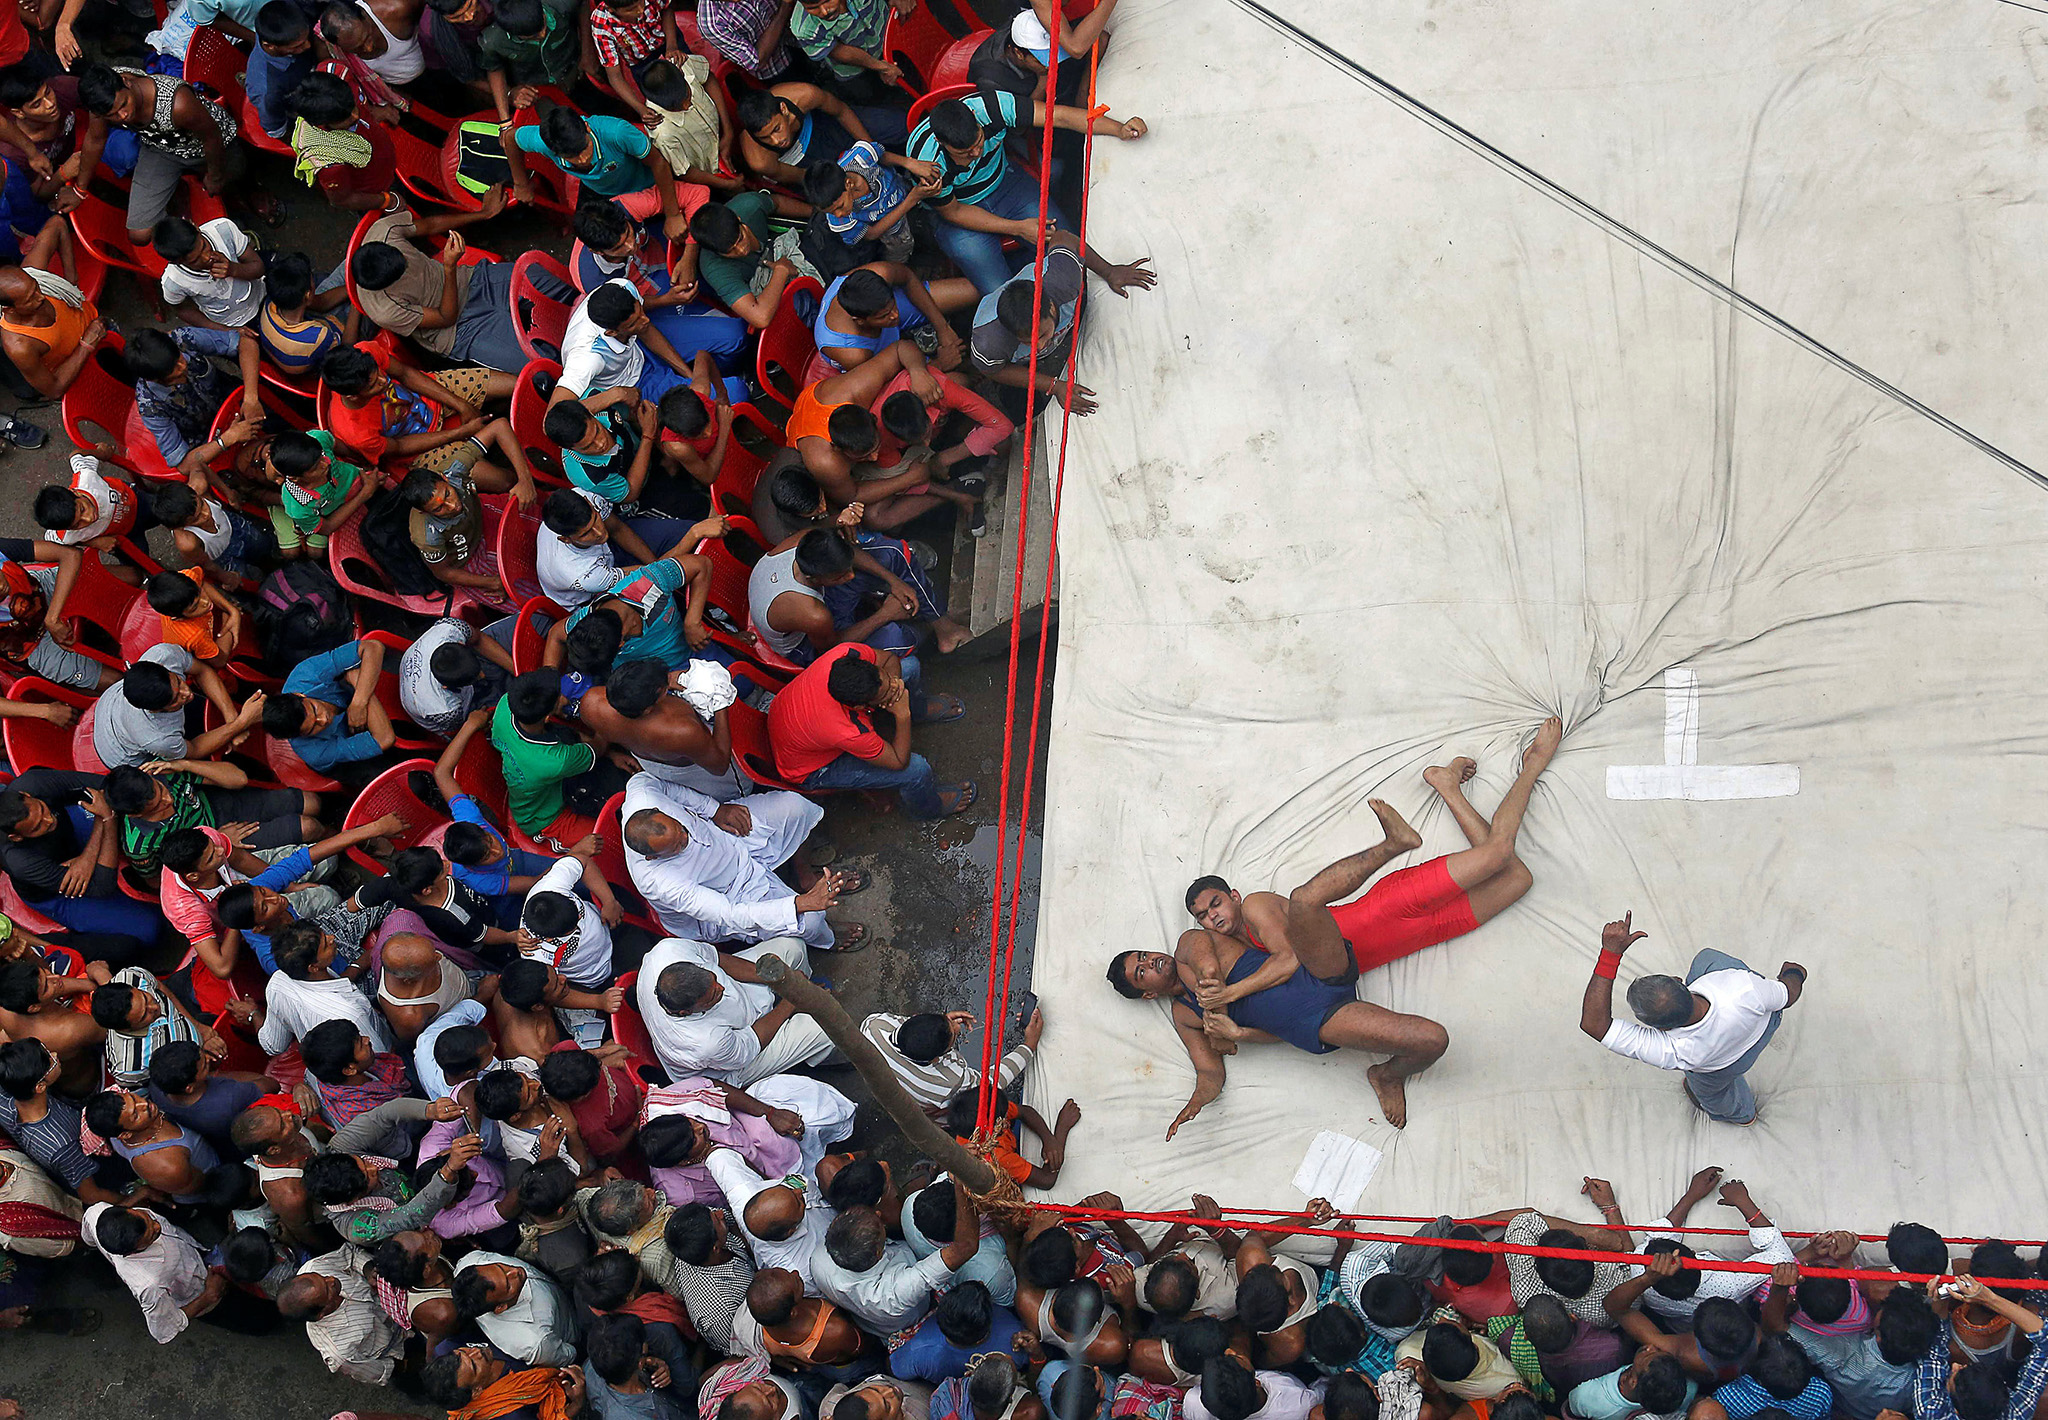 Wrestlers fight during an amateur wrestling match inside a makeshift ring installed on a road organised by local residents as part of the celebrations for the annual Hindu festival of Diwali in Kolkata, India, October 27, 2016. REUTERS/Rupak De Chowdhuri